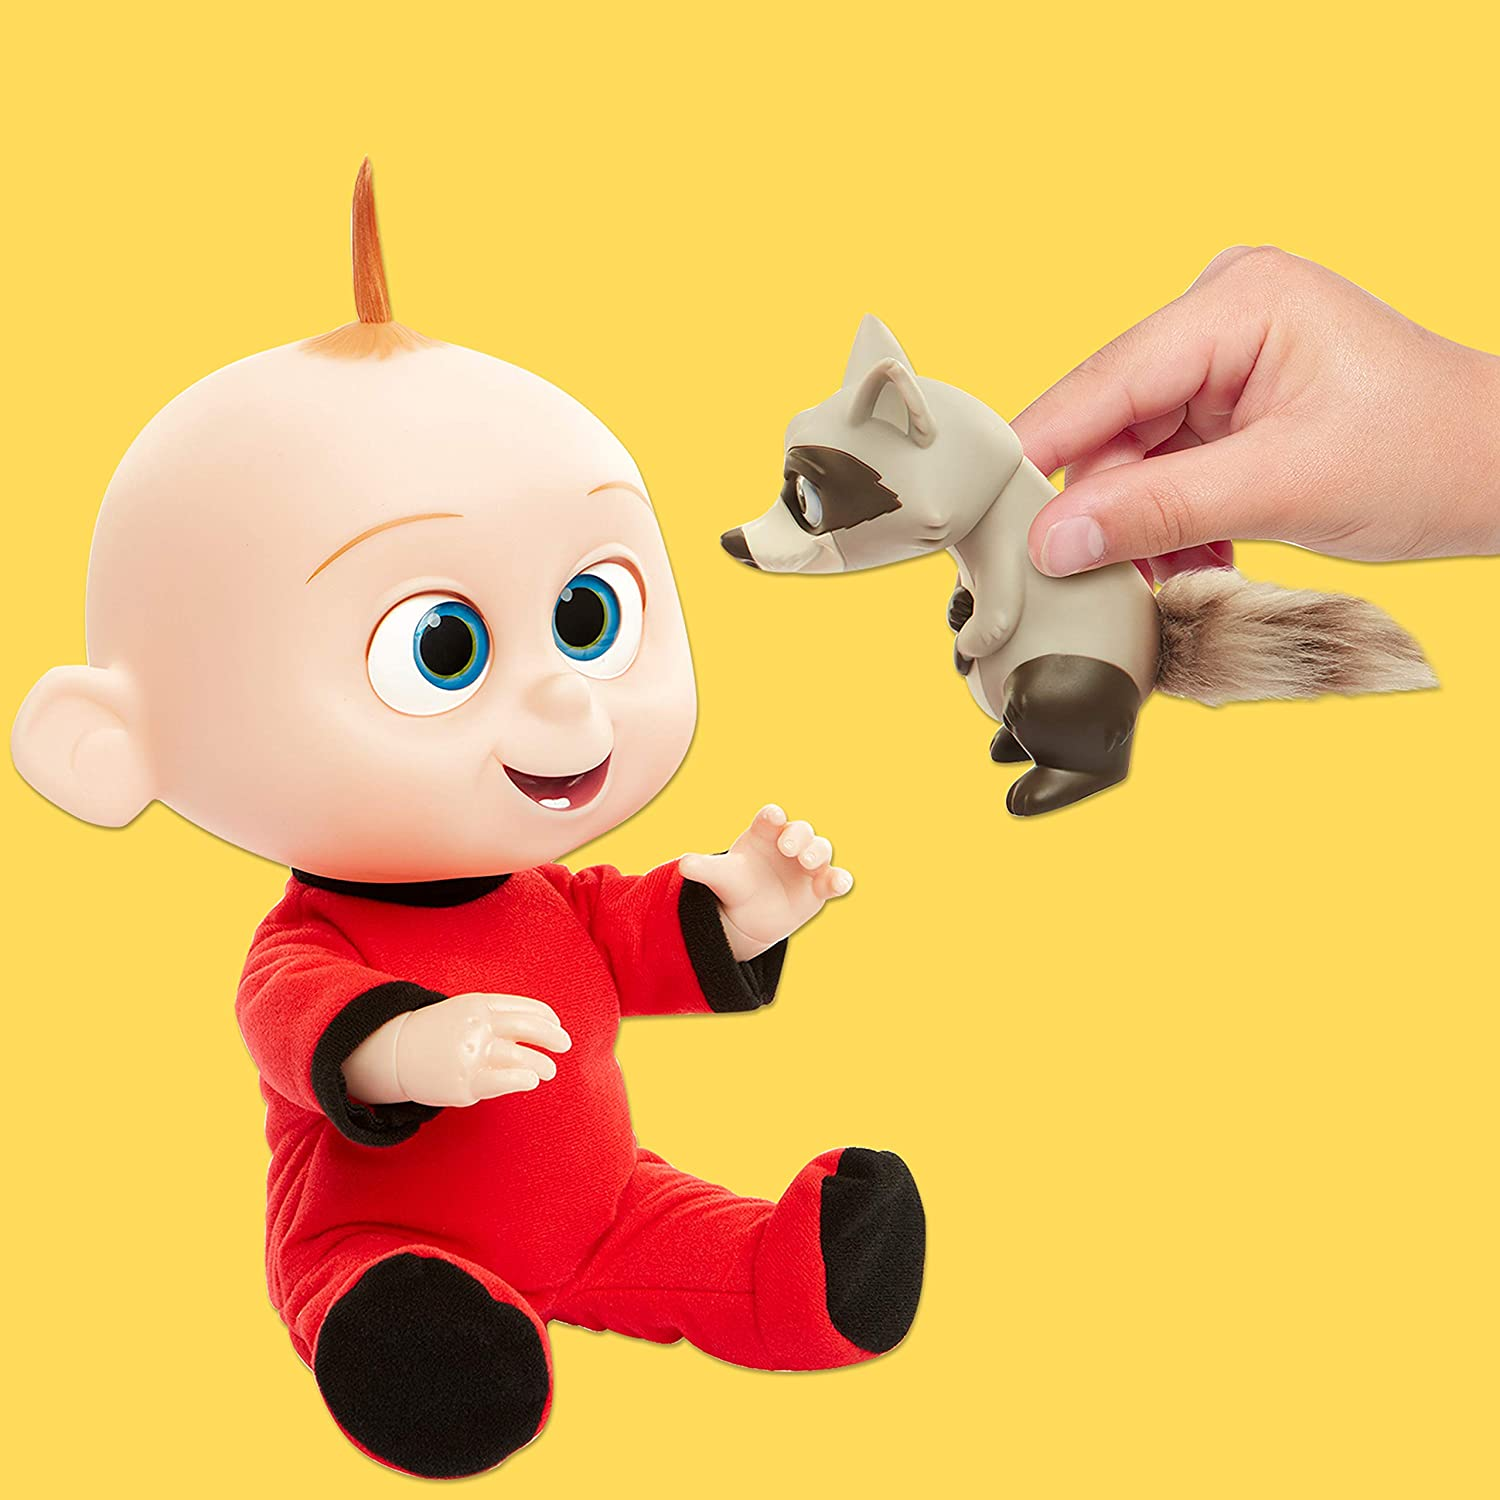 Incredibles 2 Jack Attacks includes Racoon Plush Doll